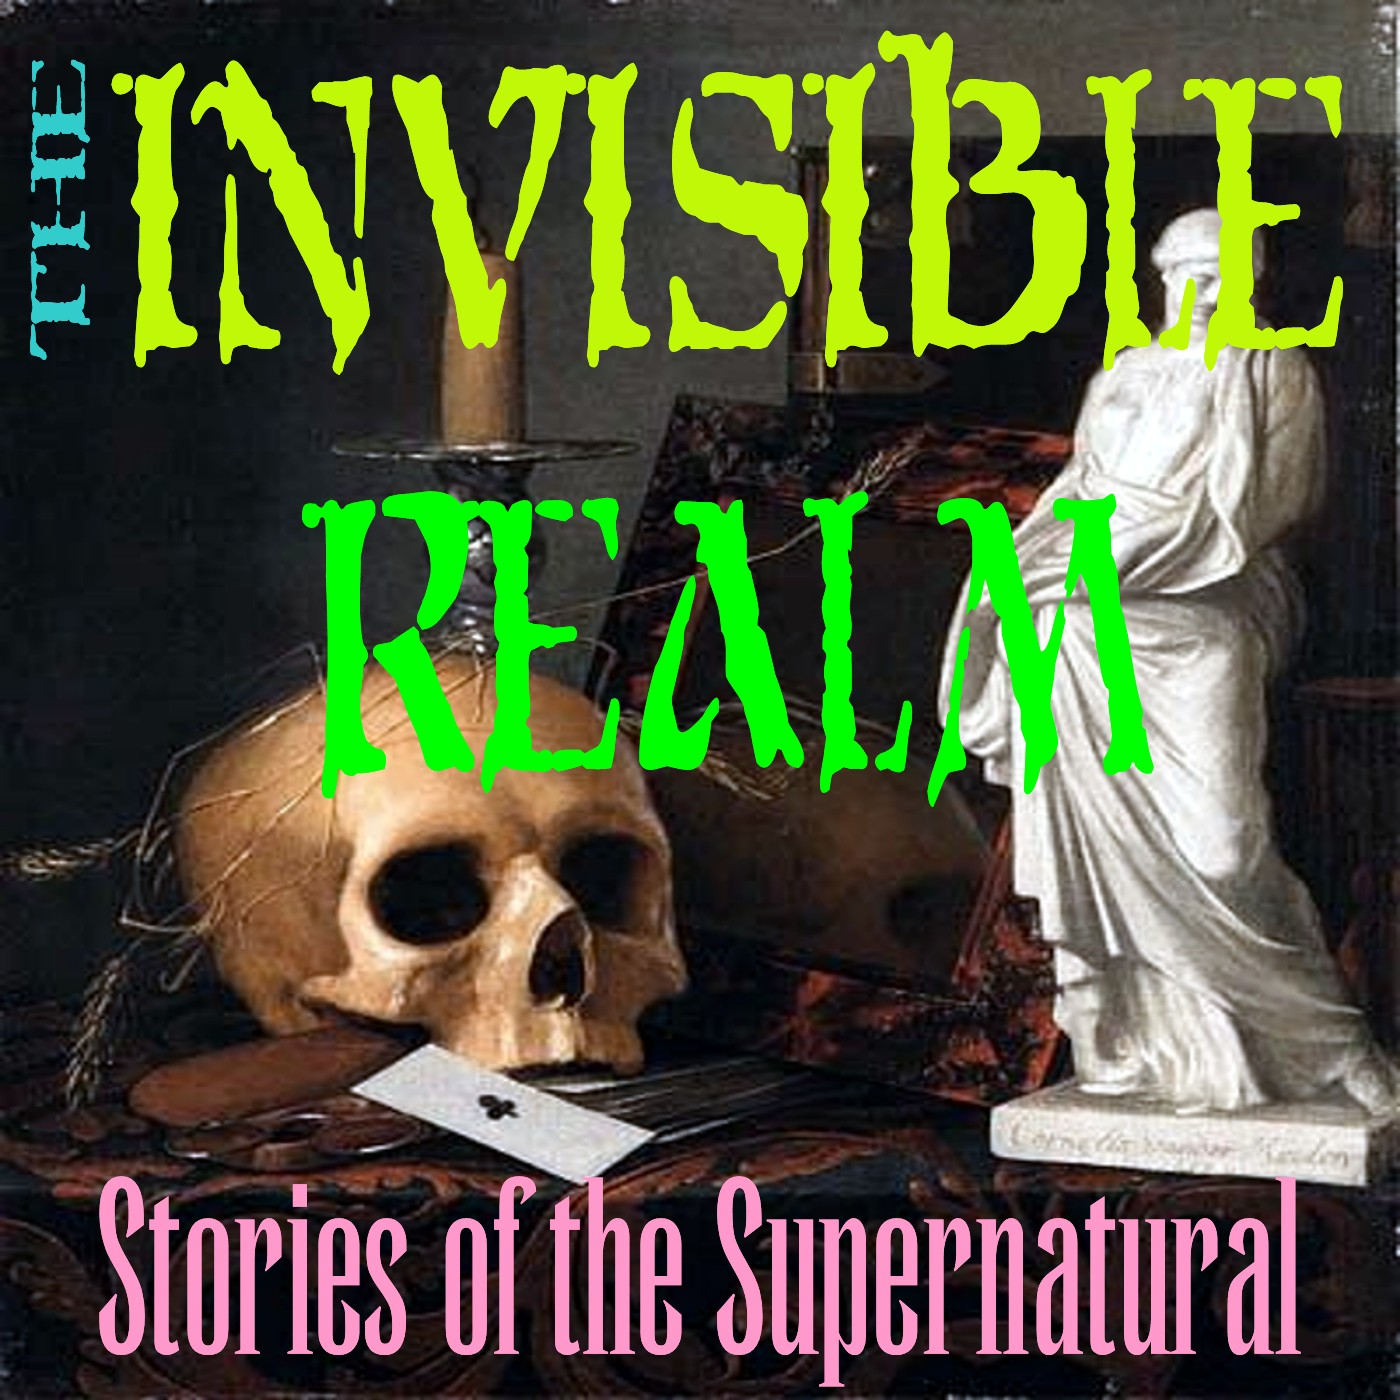 The Invisible Realm   Interview with Joe Cetrone   Podcast